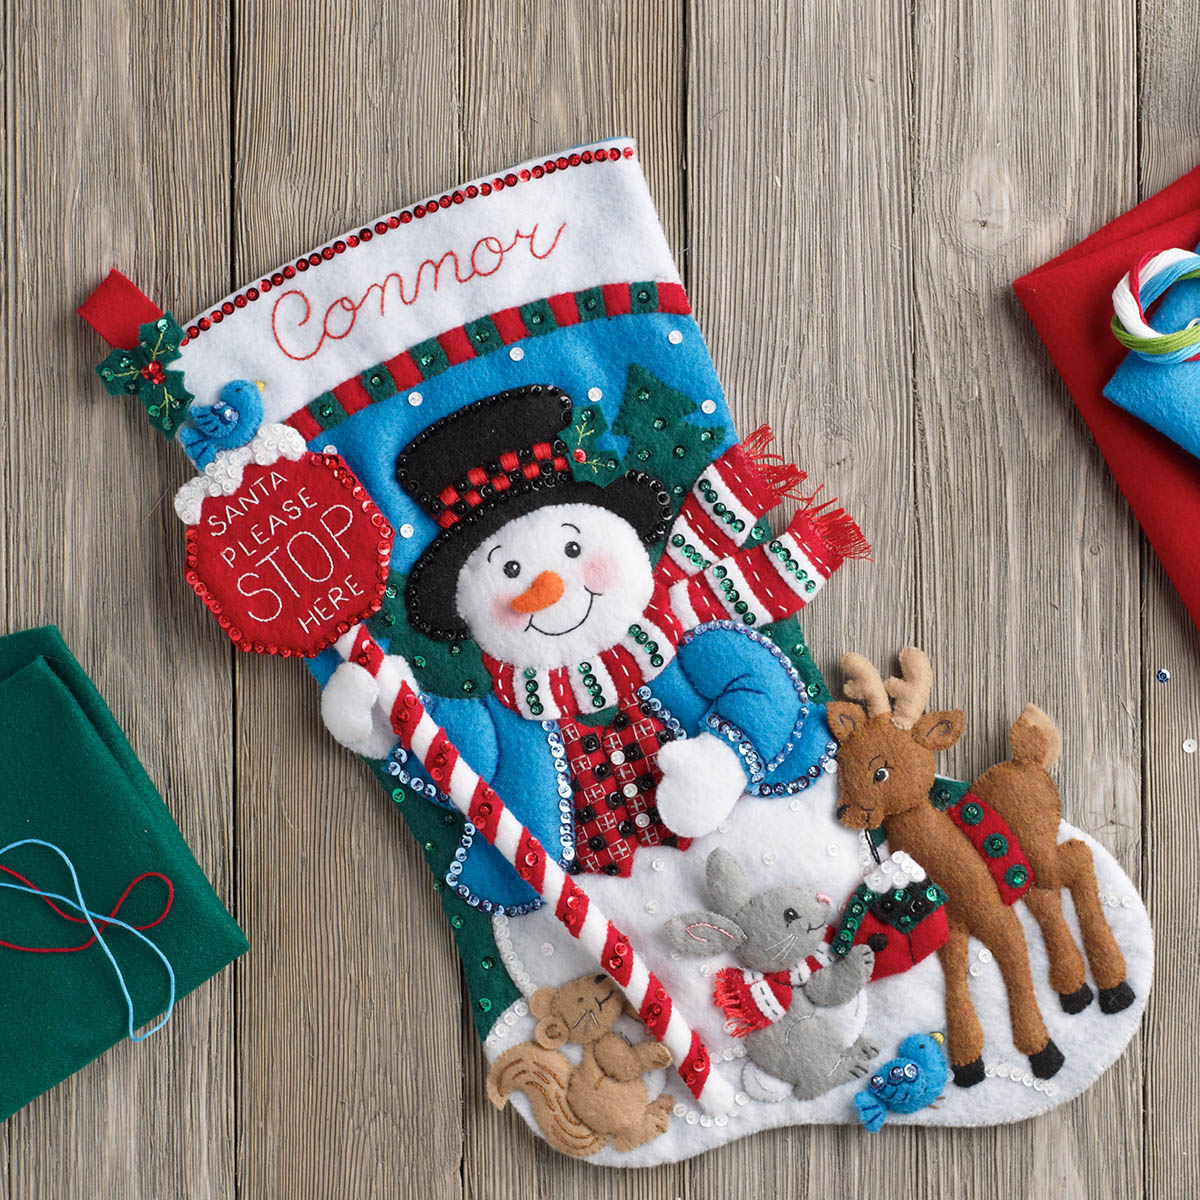 Bucilla ® Seasonal - Felt - Stocking Kits - Santa Stop Here - 86707